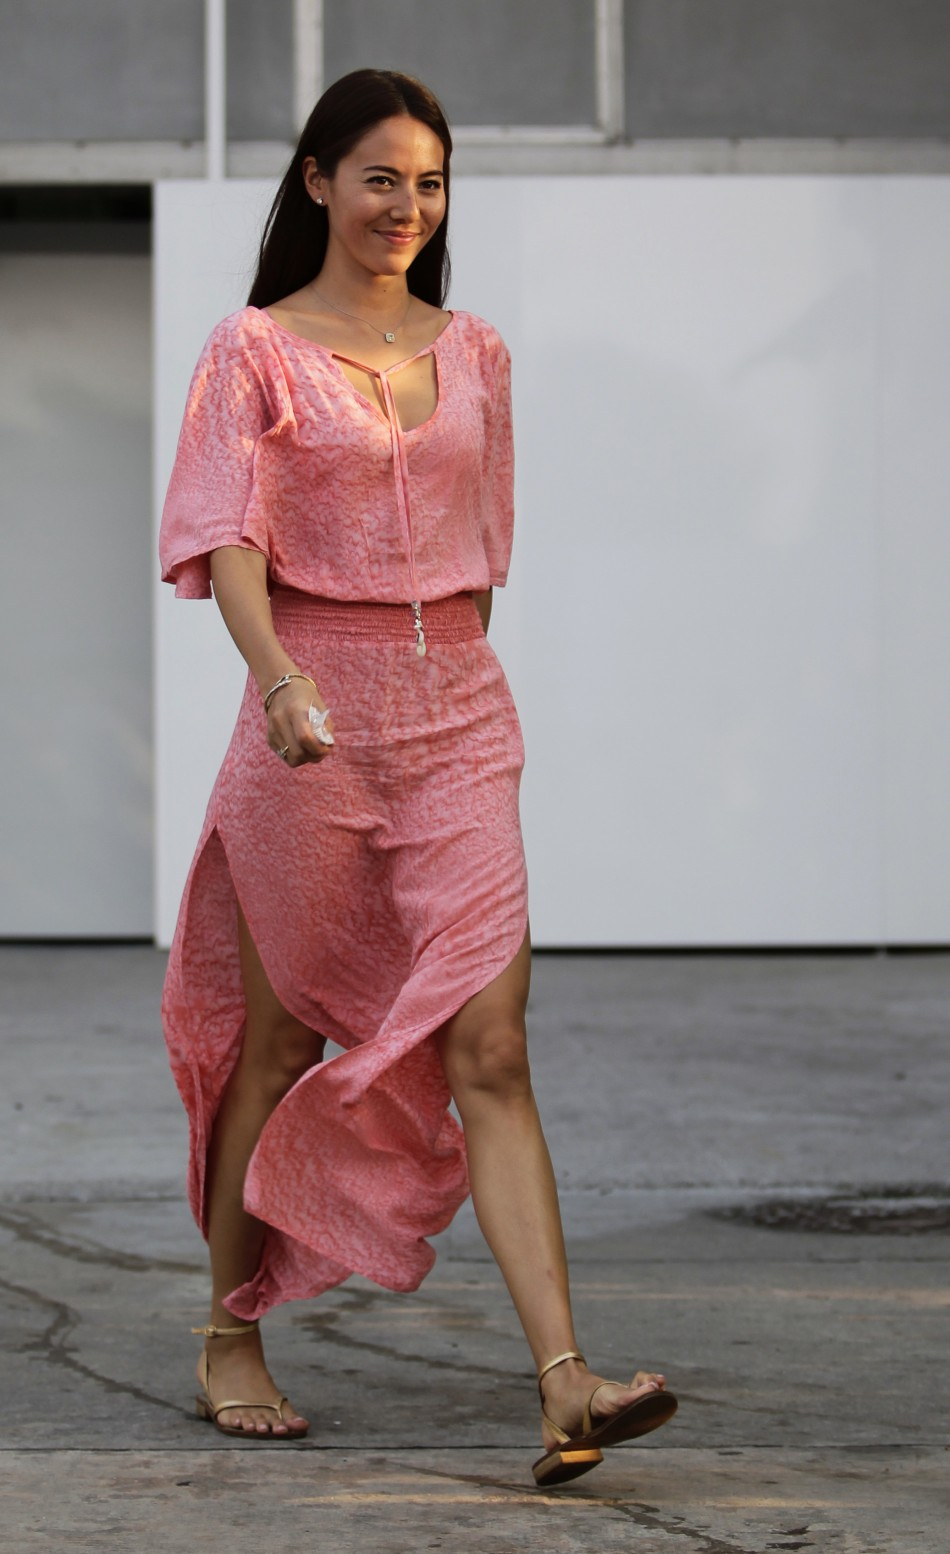 Jessica Michibata, girlfriend of Button, walks in the paddock area after the qualifying session of the Malaysian F1 Grand Prix at Sepang International Circuit outside Kuala Lumpur